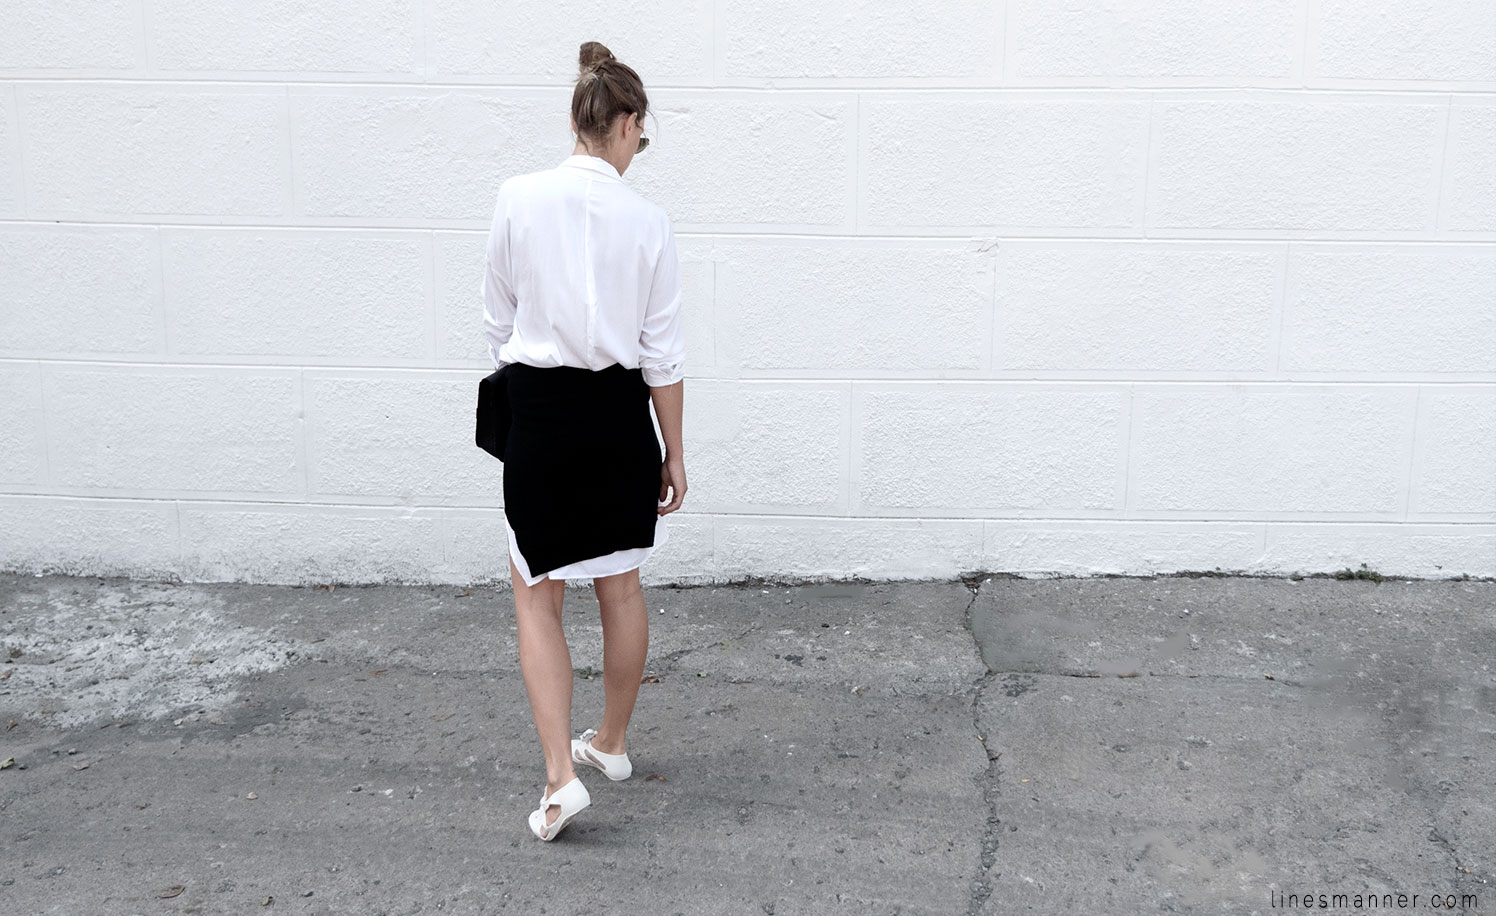 Lines-Manner-Whiteout-Fashion-Minimal-Clean-Fresh-Brigthly-All_White-Monochrome-Immaculate-Trend-Style-Sleek-Slouchy-Details-White_Shirt-Transeasonal-Dressing-Outfit-12